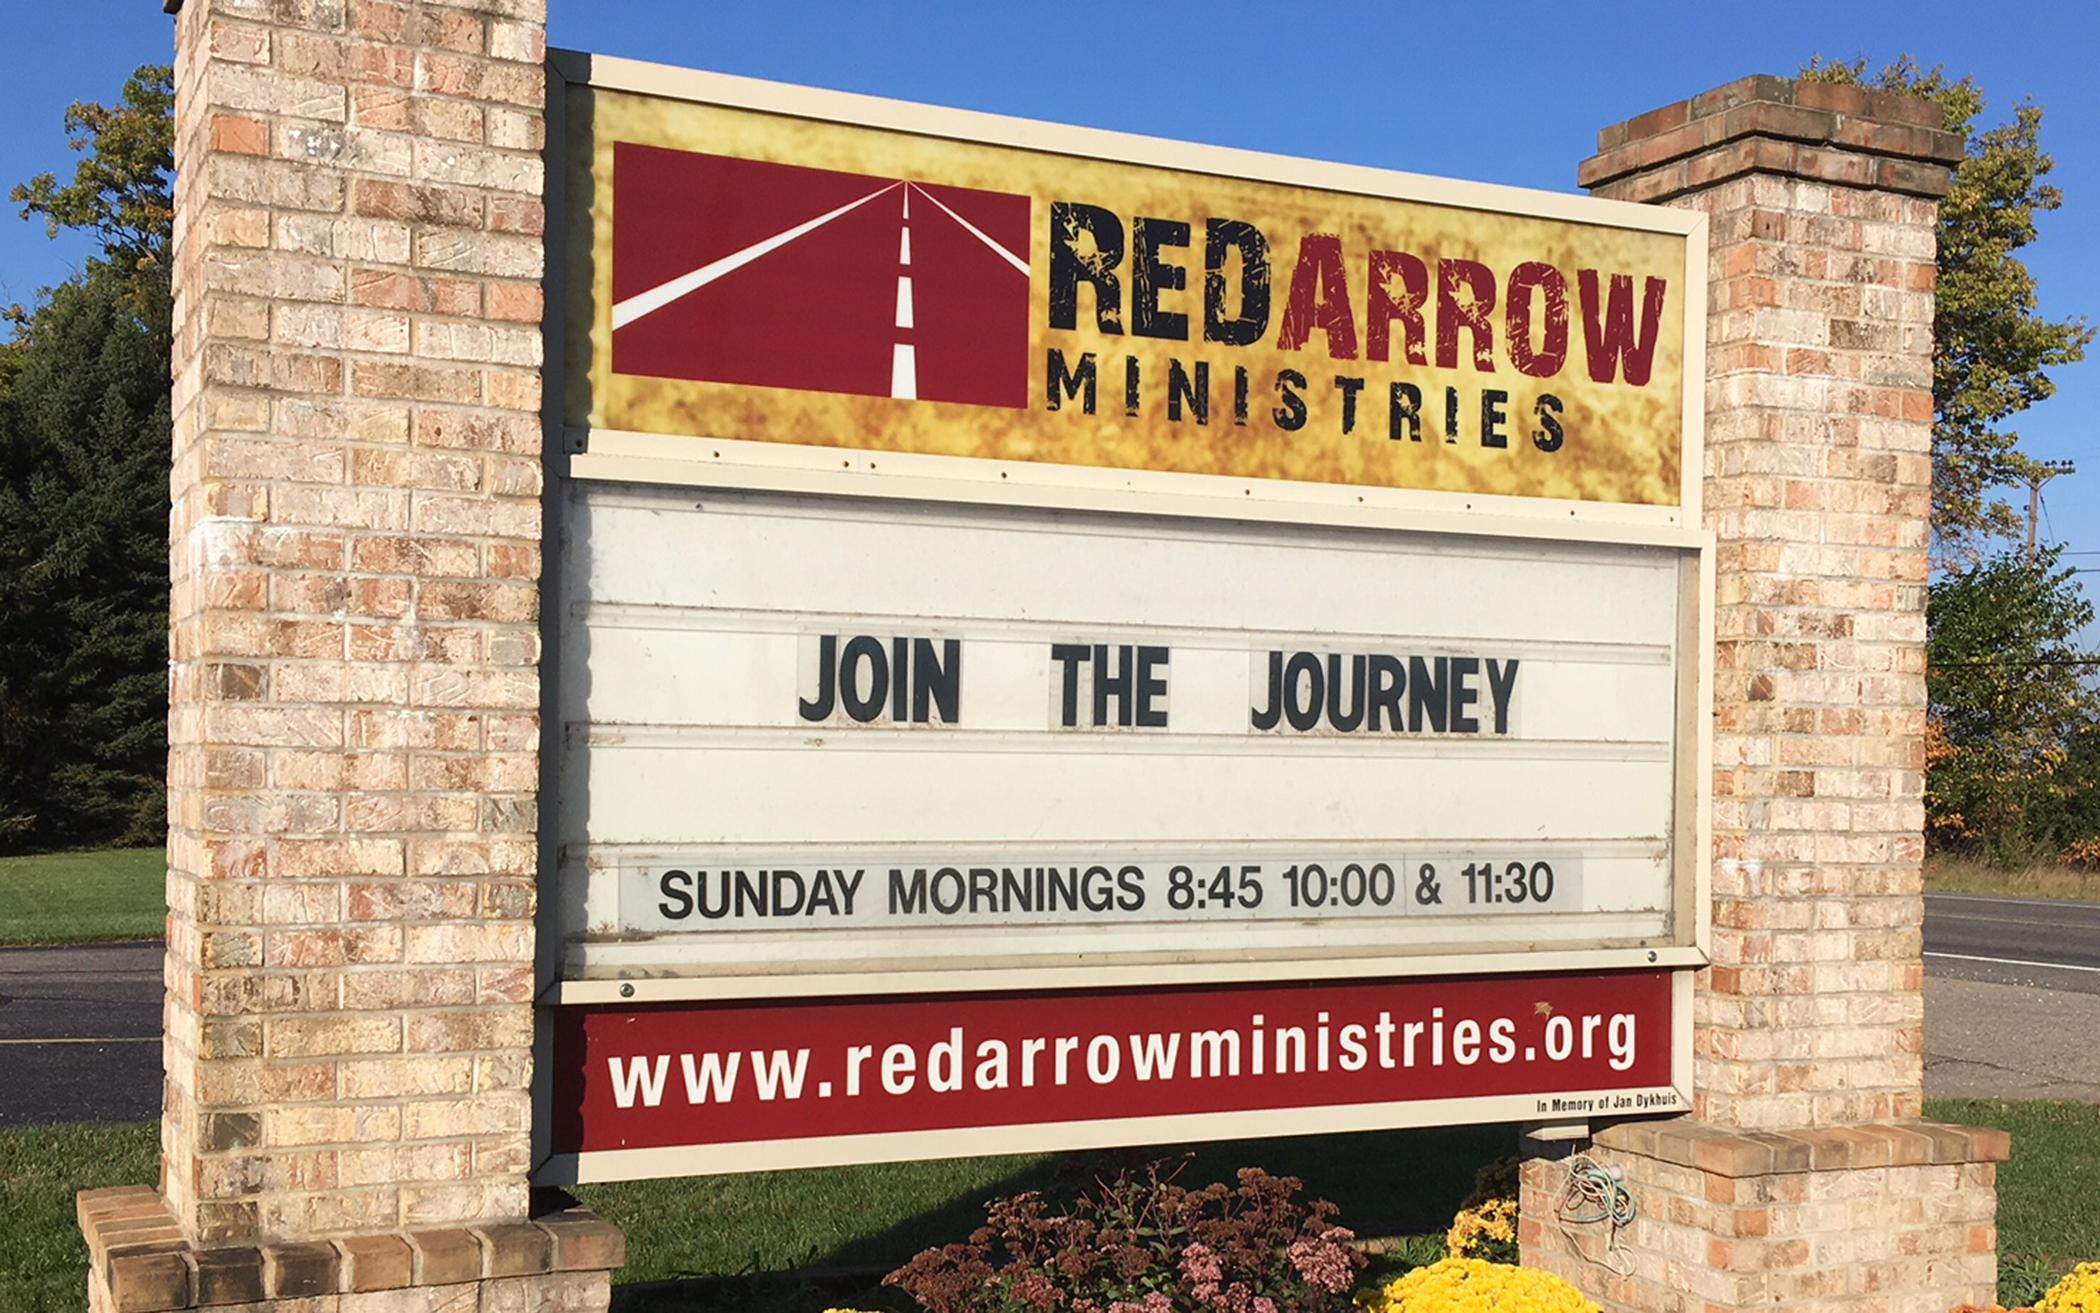 RedArrow Ministries: Ten Years of Growing in Place